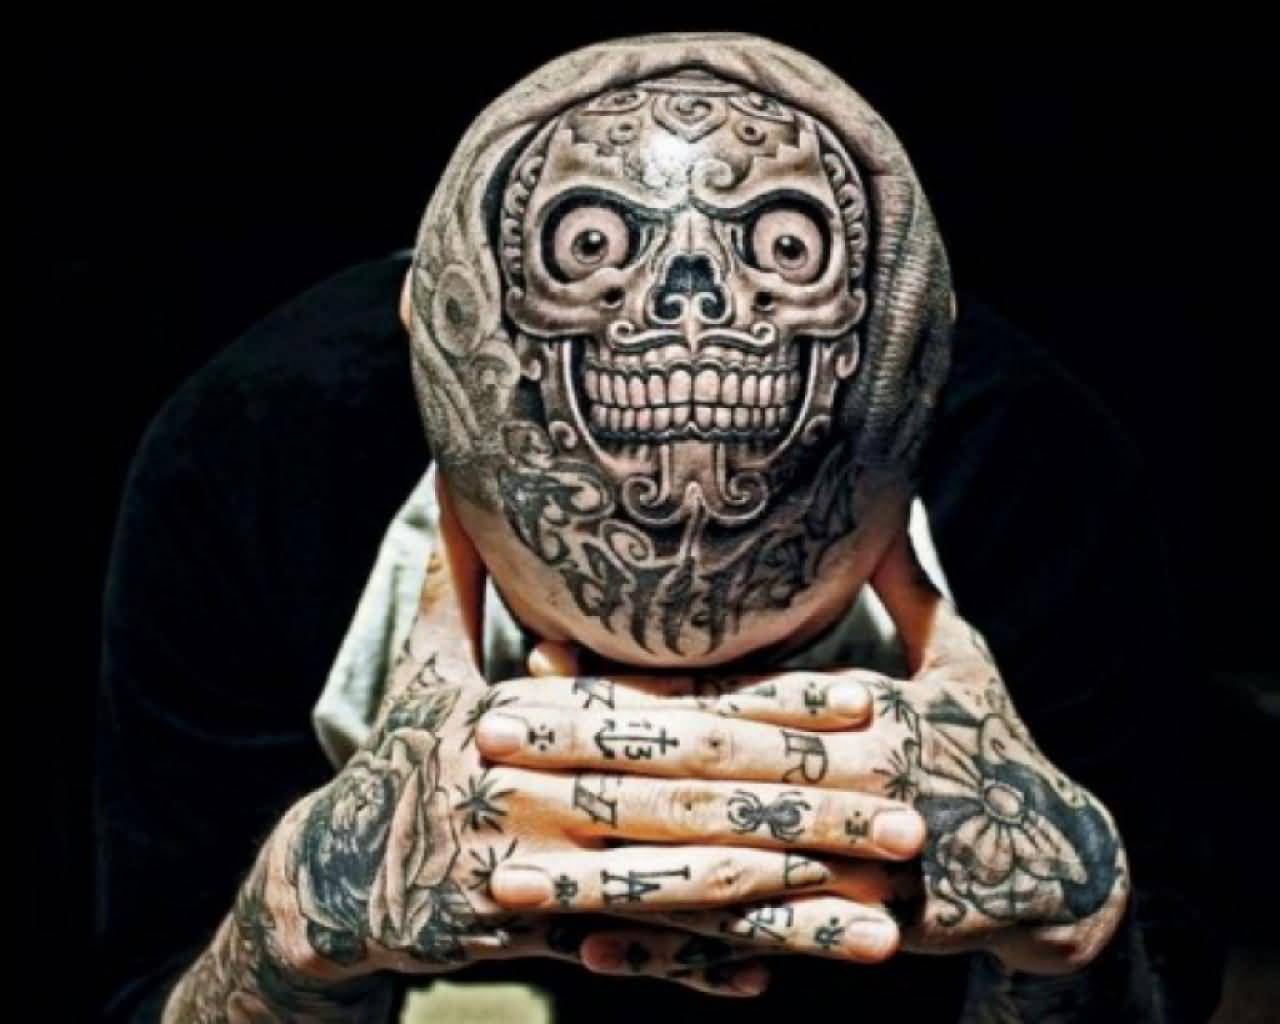 Upper Head Extreme Mask Tattoo